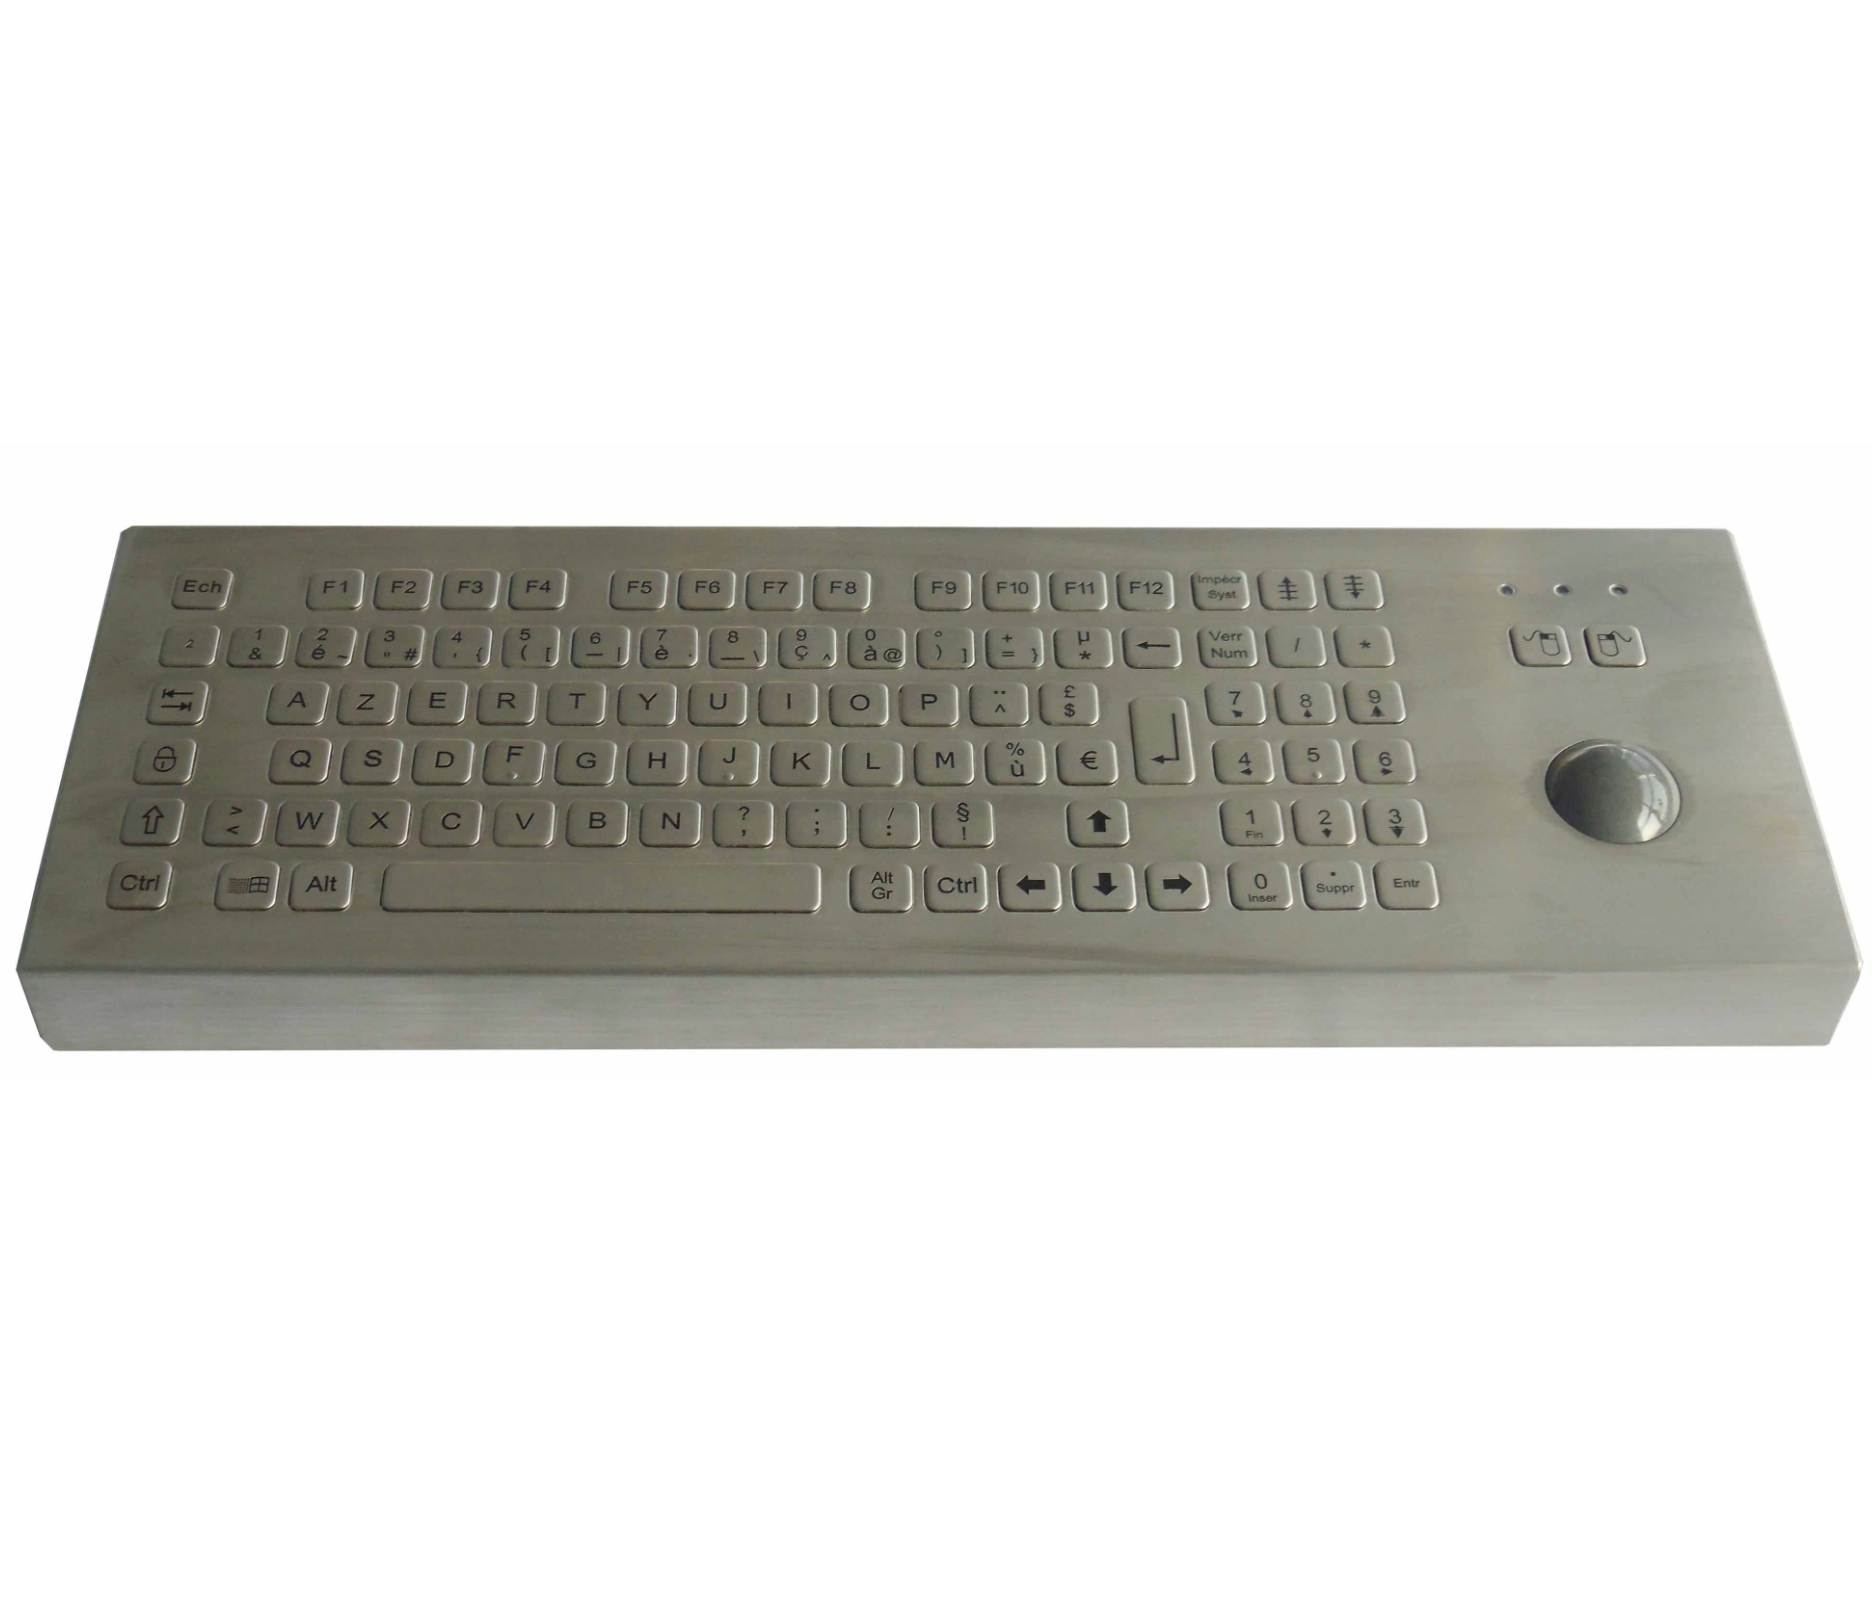 Choosing the right industrial keyboard